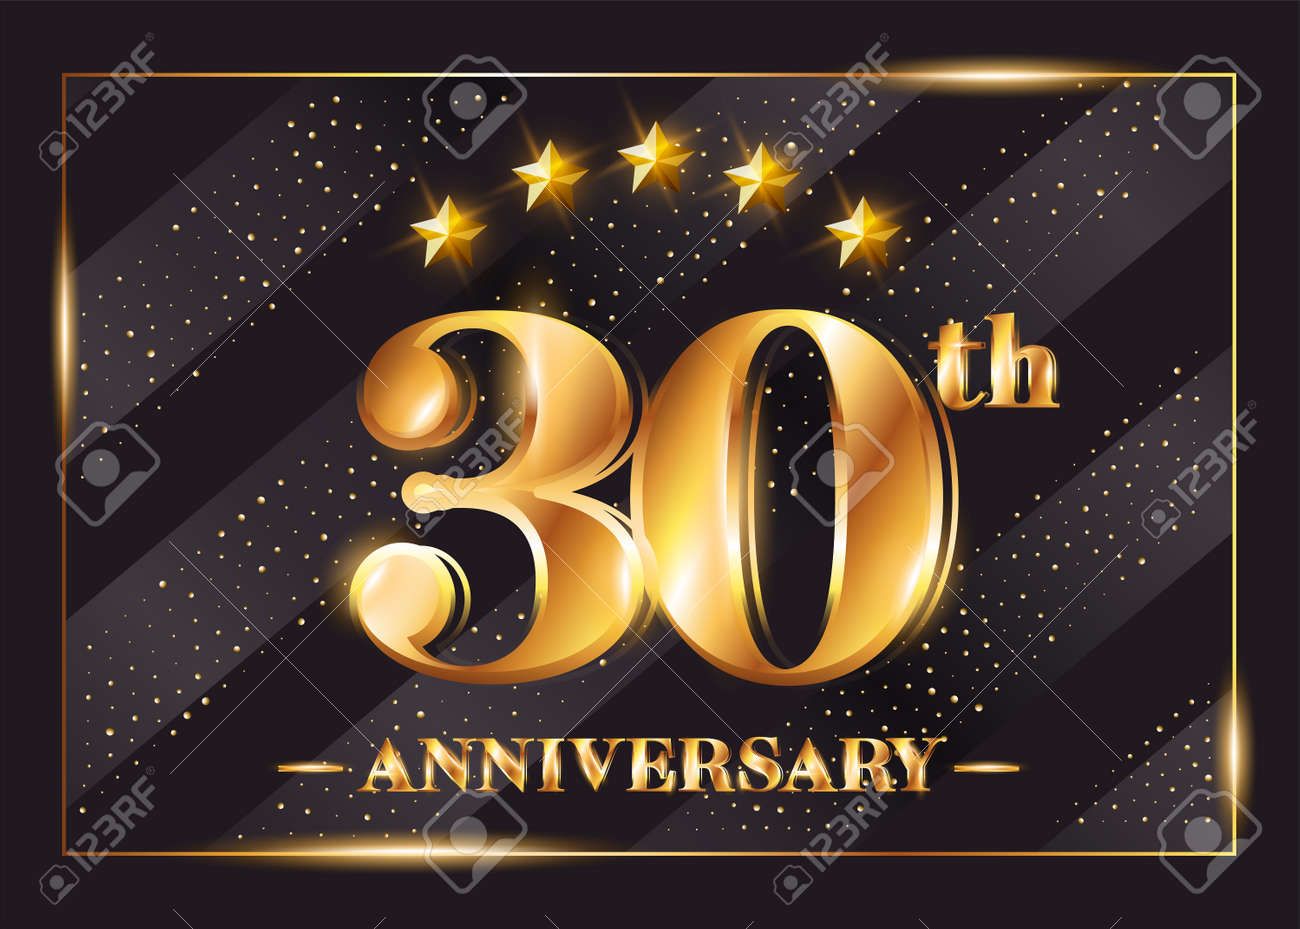 30 years anniversary celebration vector logo. 30th anniversary